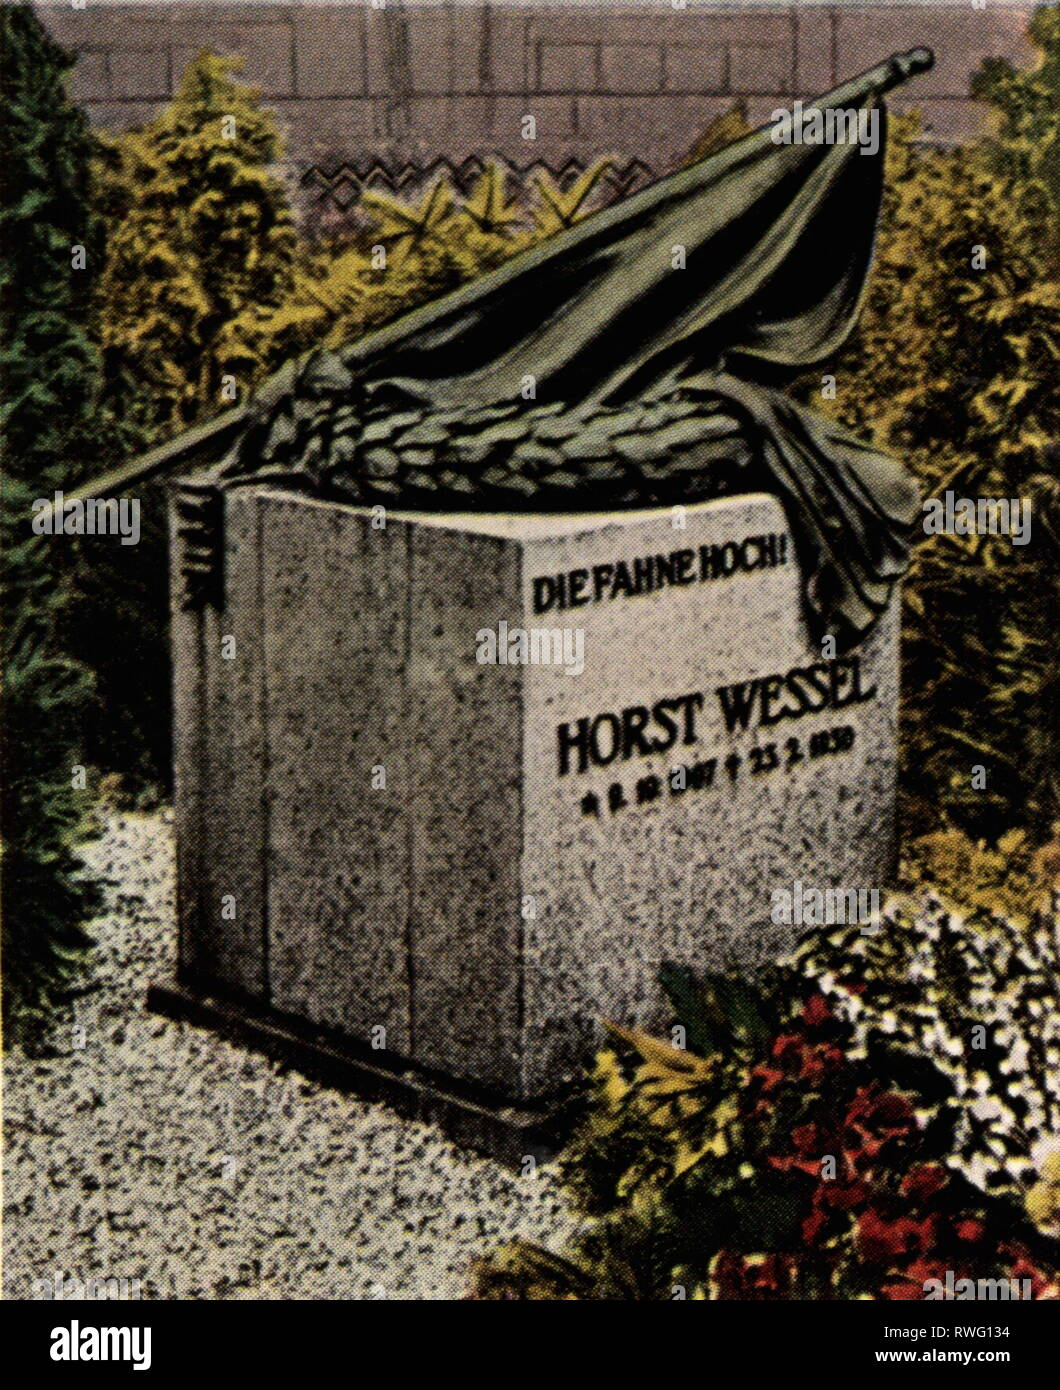 Wessel, Horst, 9.10.1907 - 23.2 1930, martyr of the NSDAP, his grave, old cemetery, Saint Nikolai, Berlin, 1930s, coloured photograph, cigarette card, series 'Die Nachkriegszeit', 1935, Additional-Rights-Clearance-Info-Not-Available - Stock Image